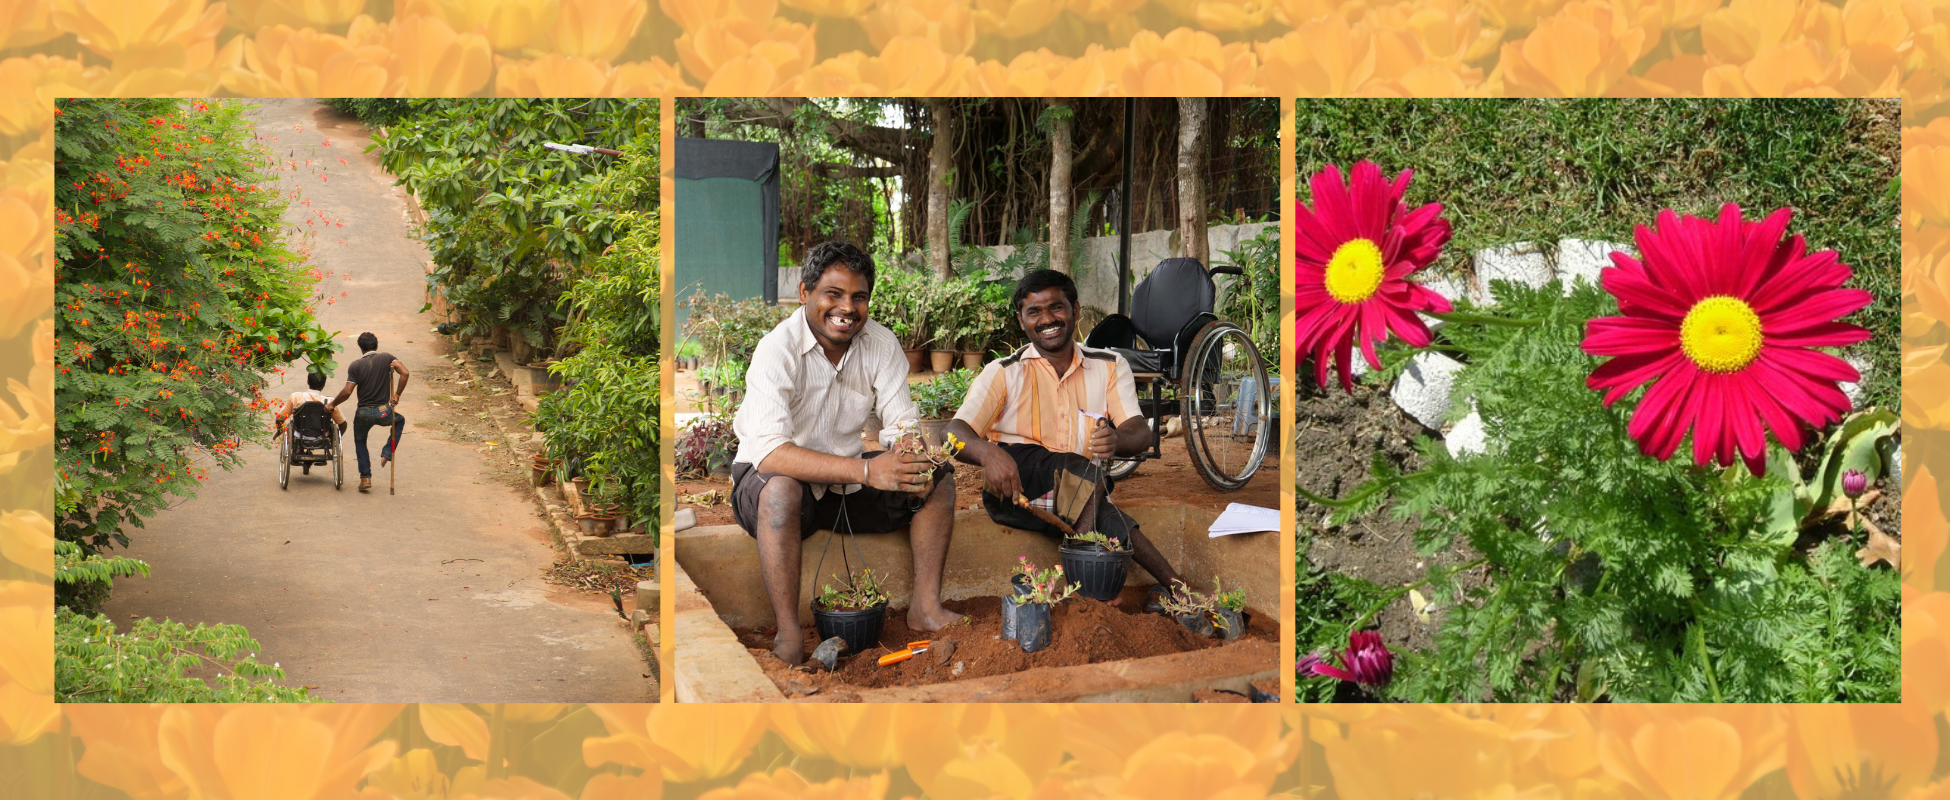 10-day Annual Garden Fair at APD Horticulture Training Center, Jeevan Bhima Nagar, Bangalore